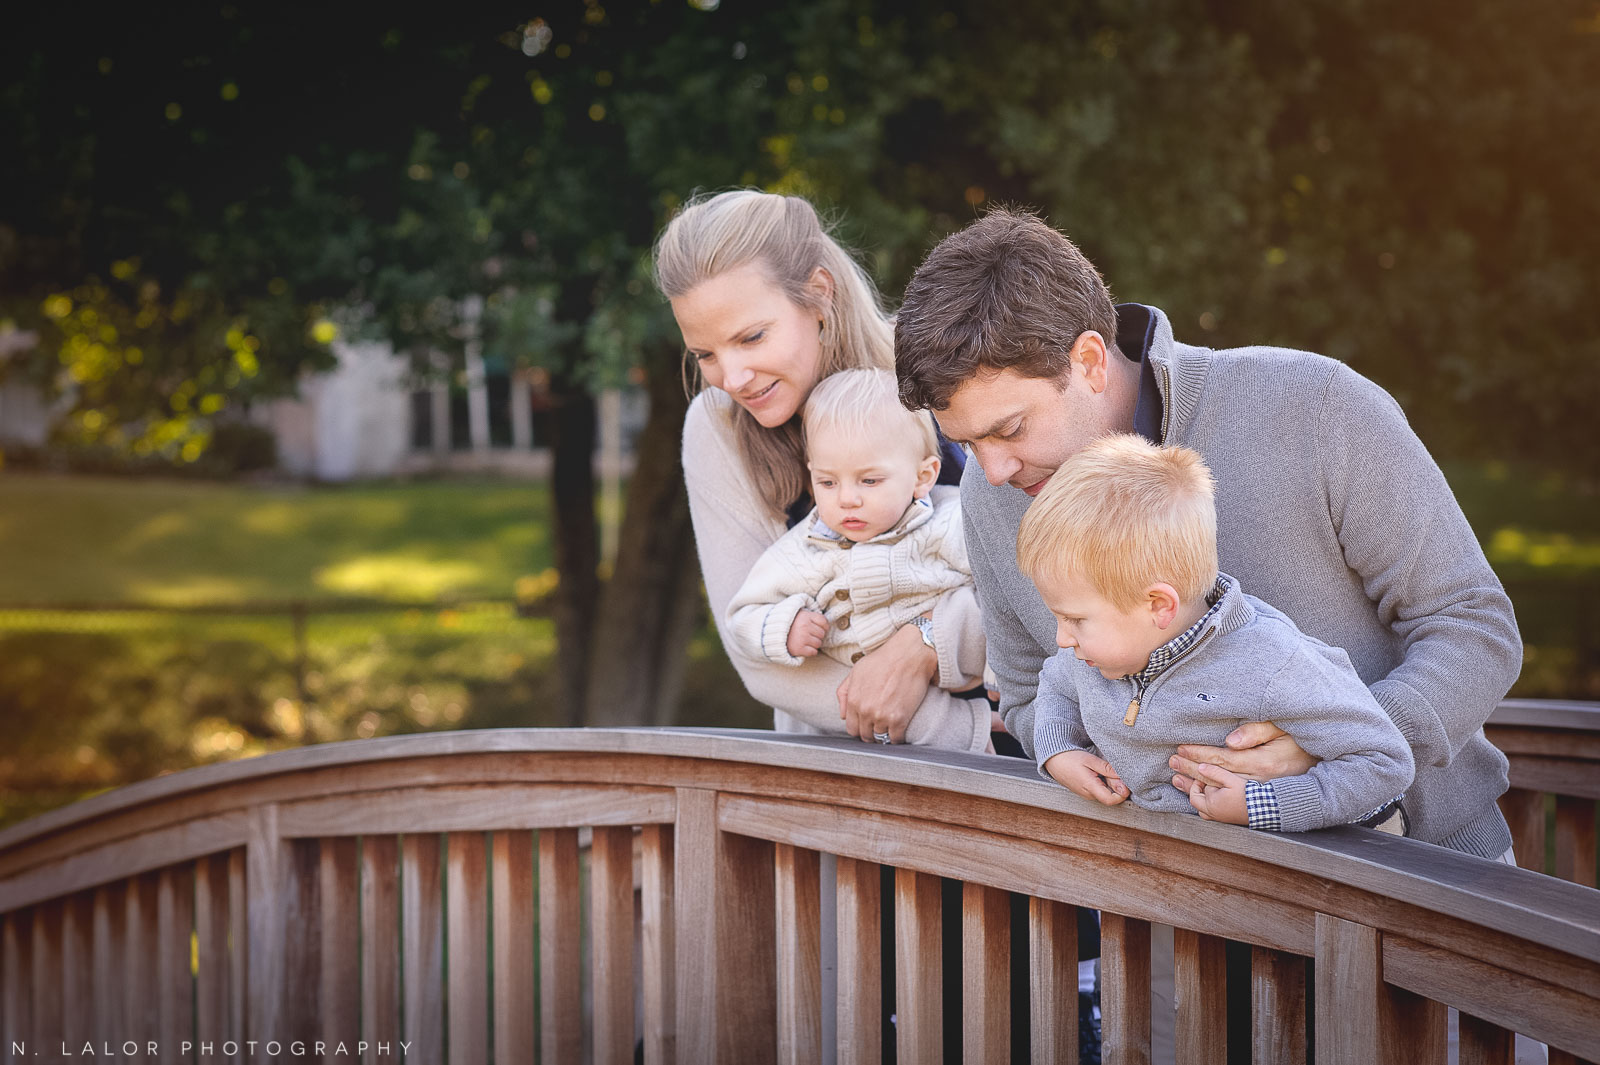 nlalor-photography-2014-styled-family-life-binney-park-old-greenwich-fall-9.jpg